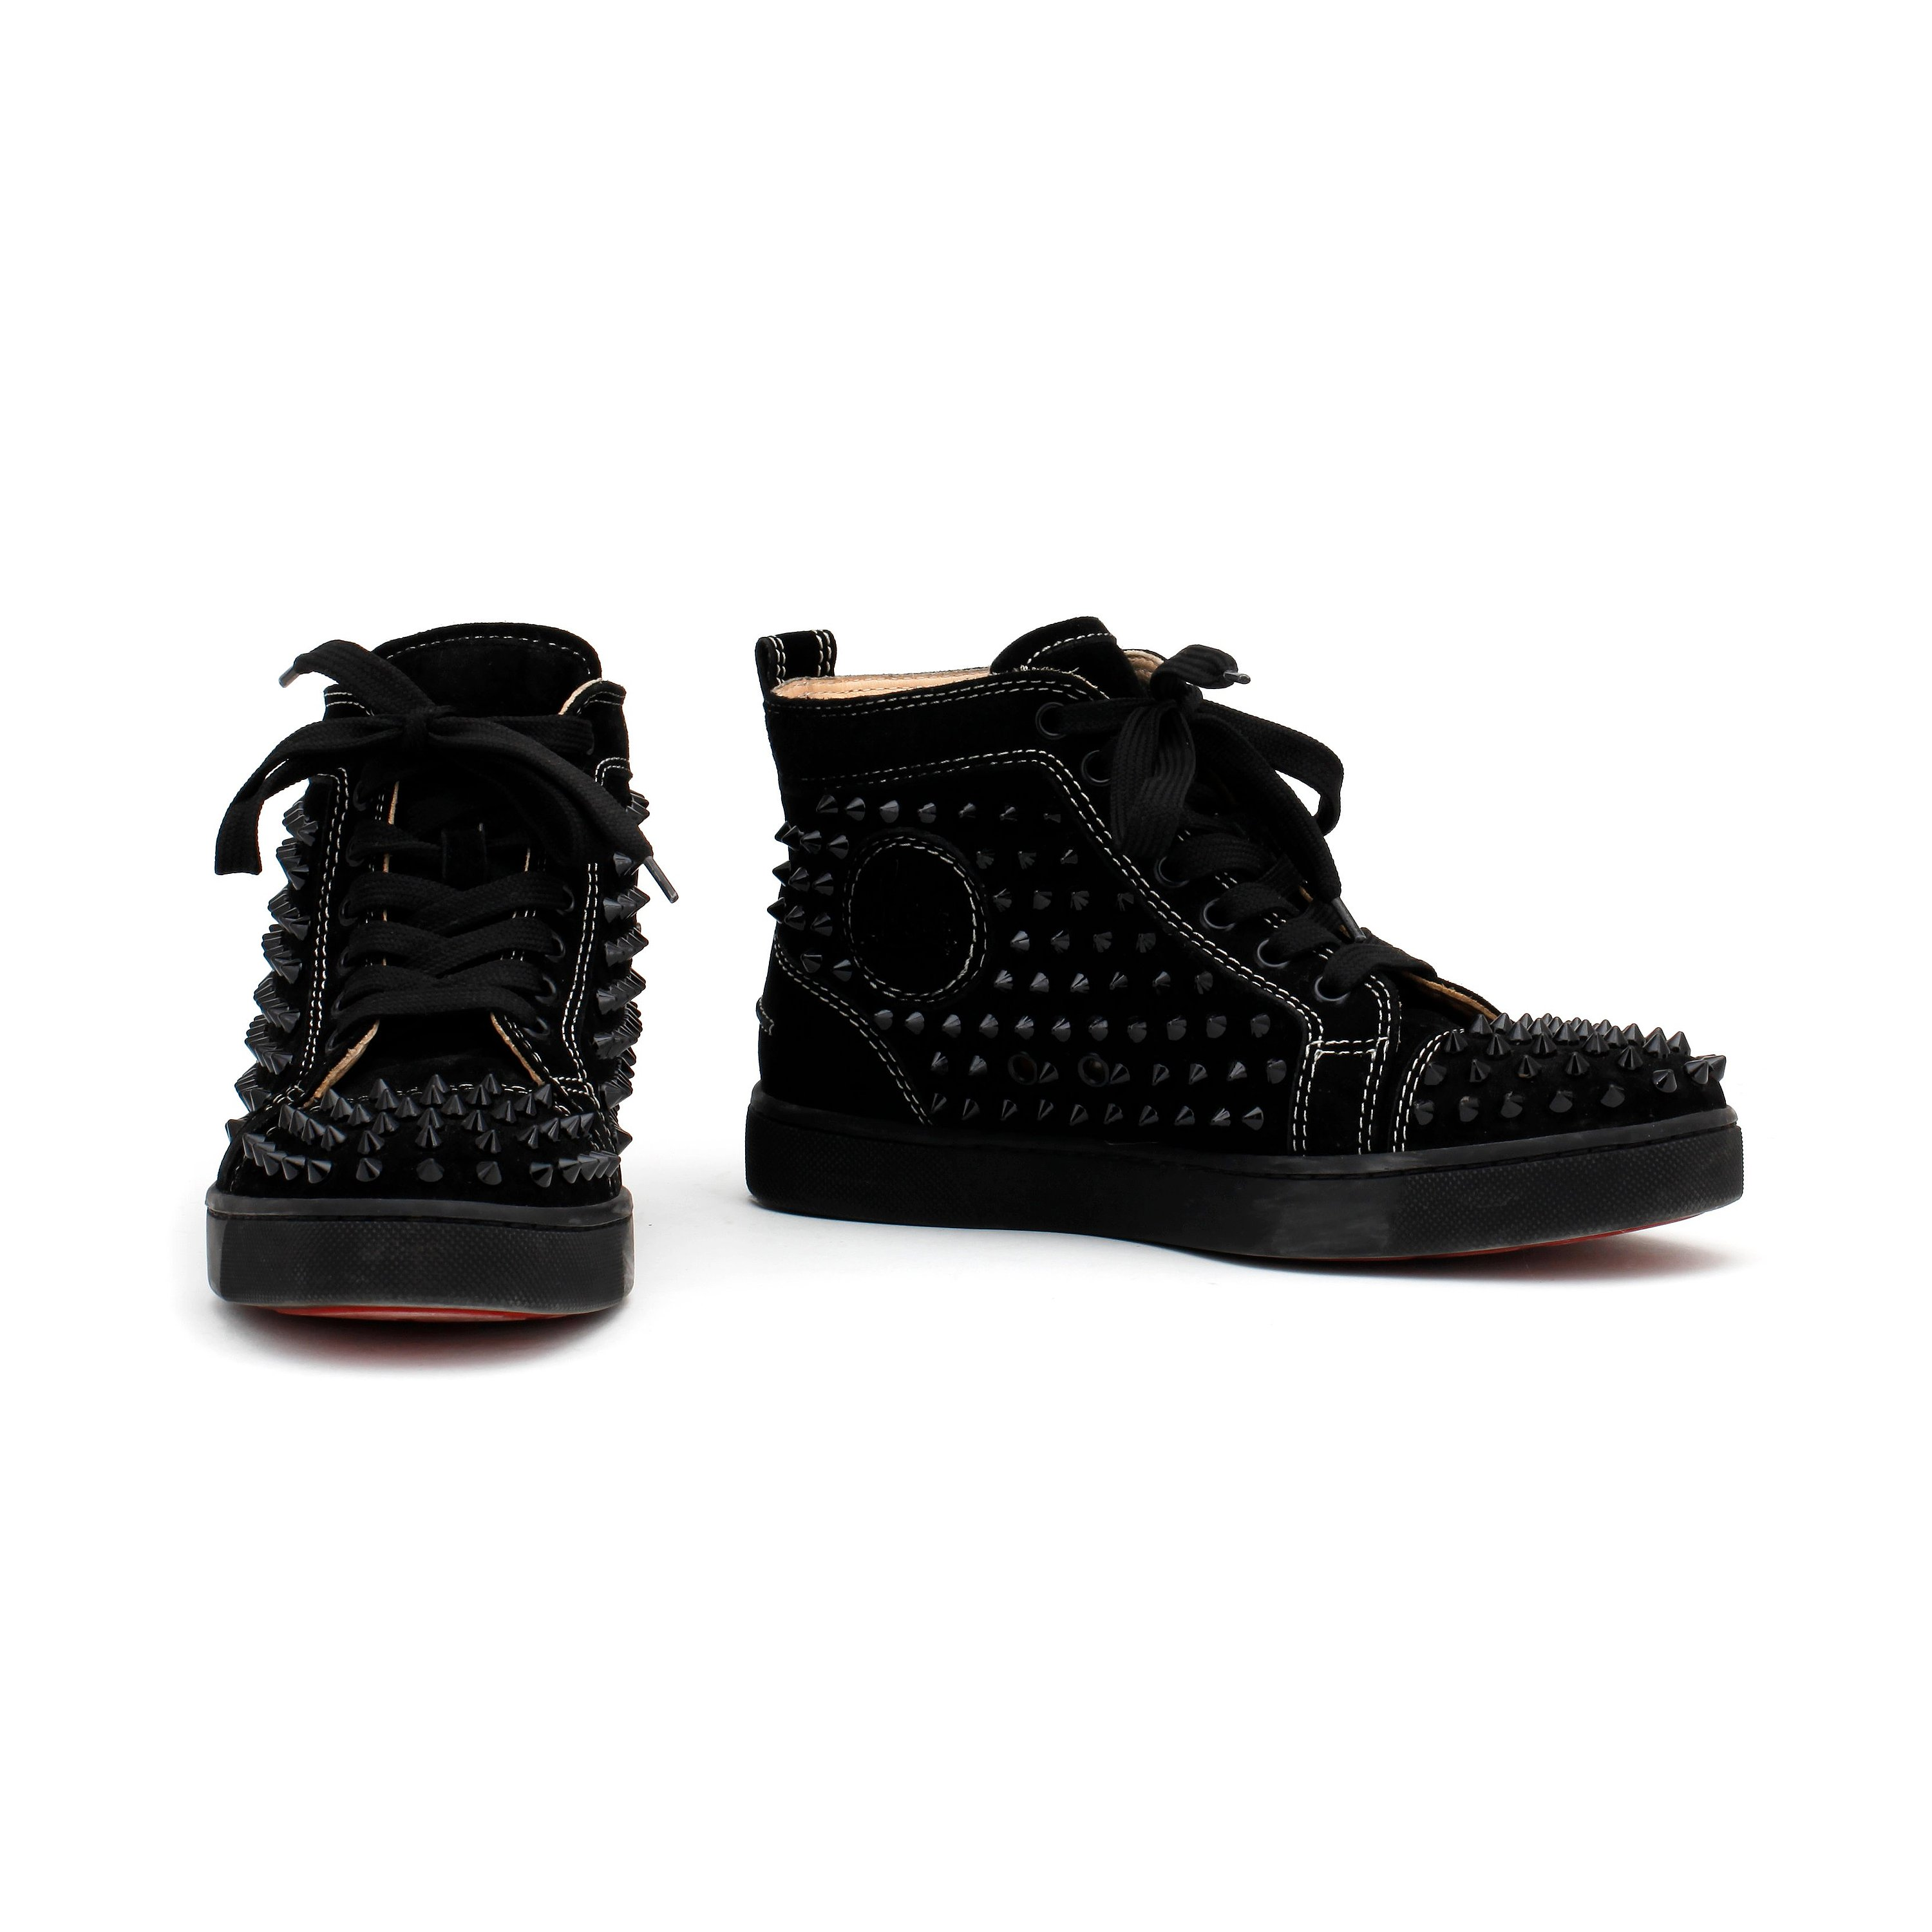 info for 6d29e 01c24 CHRISTIAN LOUBOUTIN, a pair of black suede sneakers,